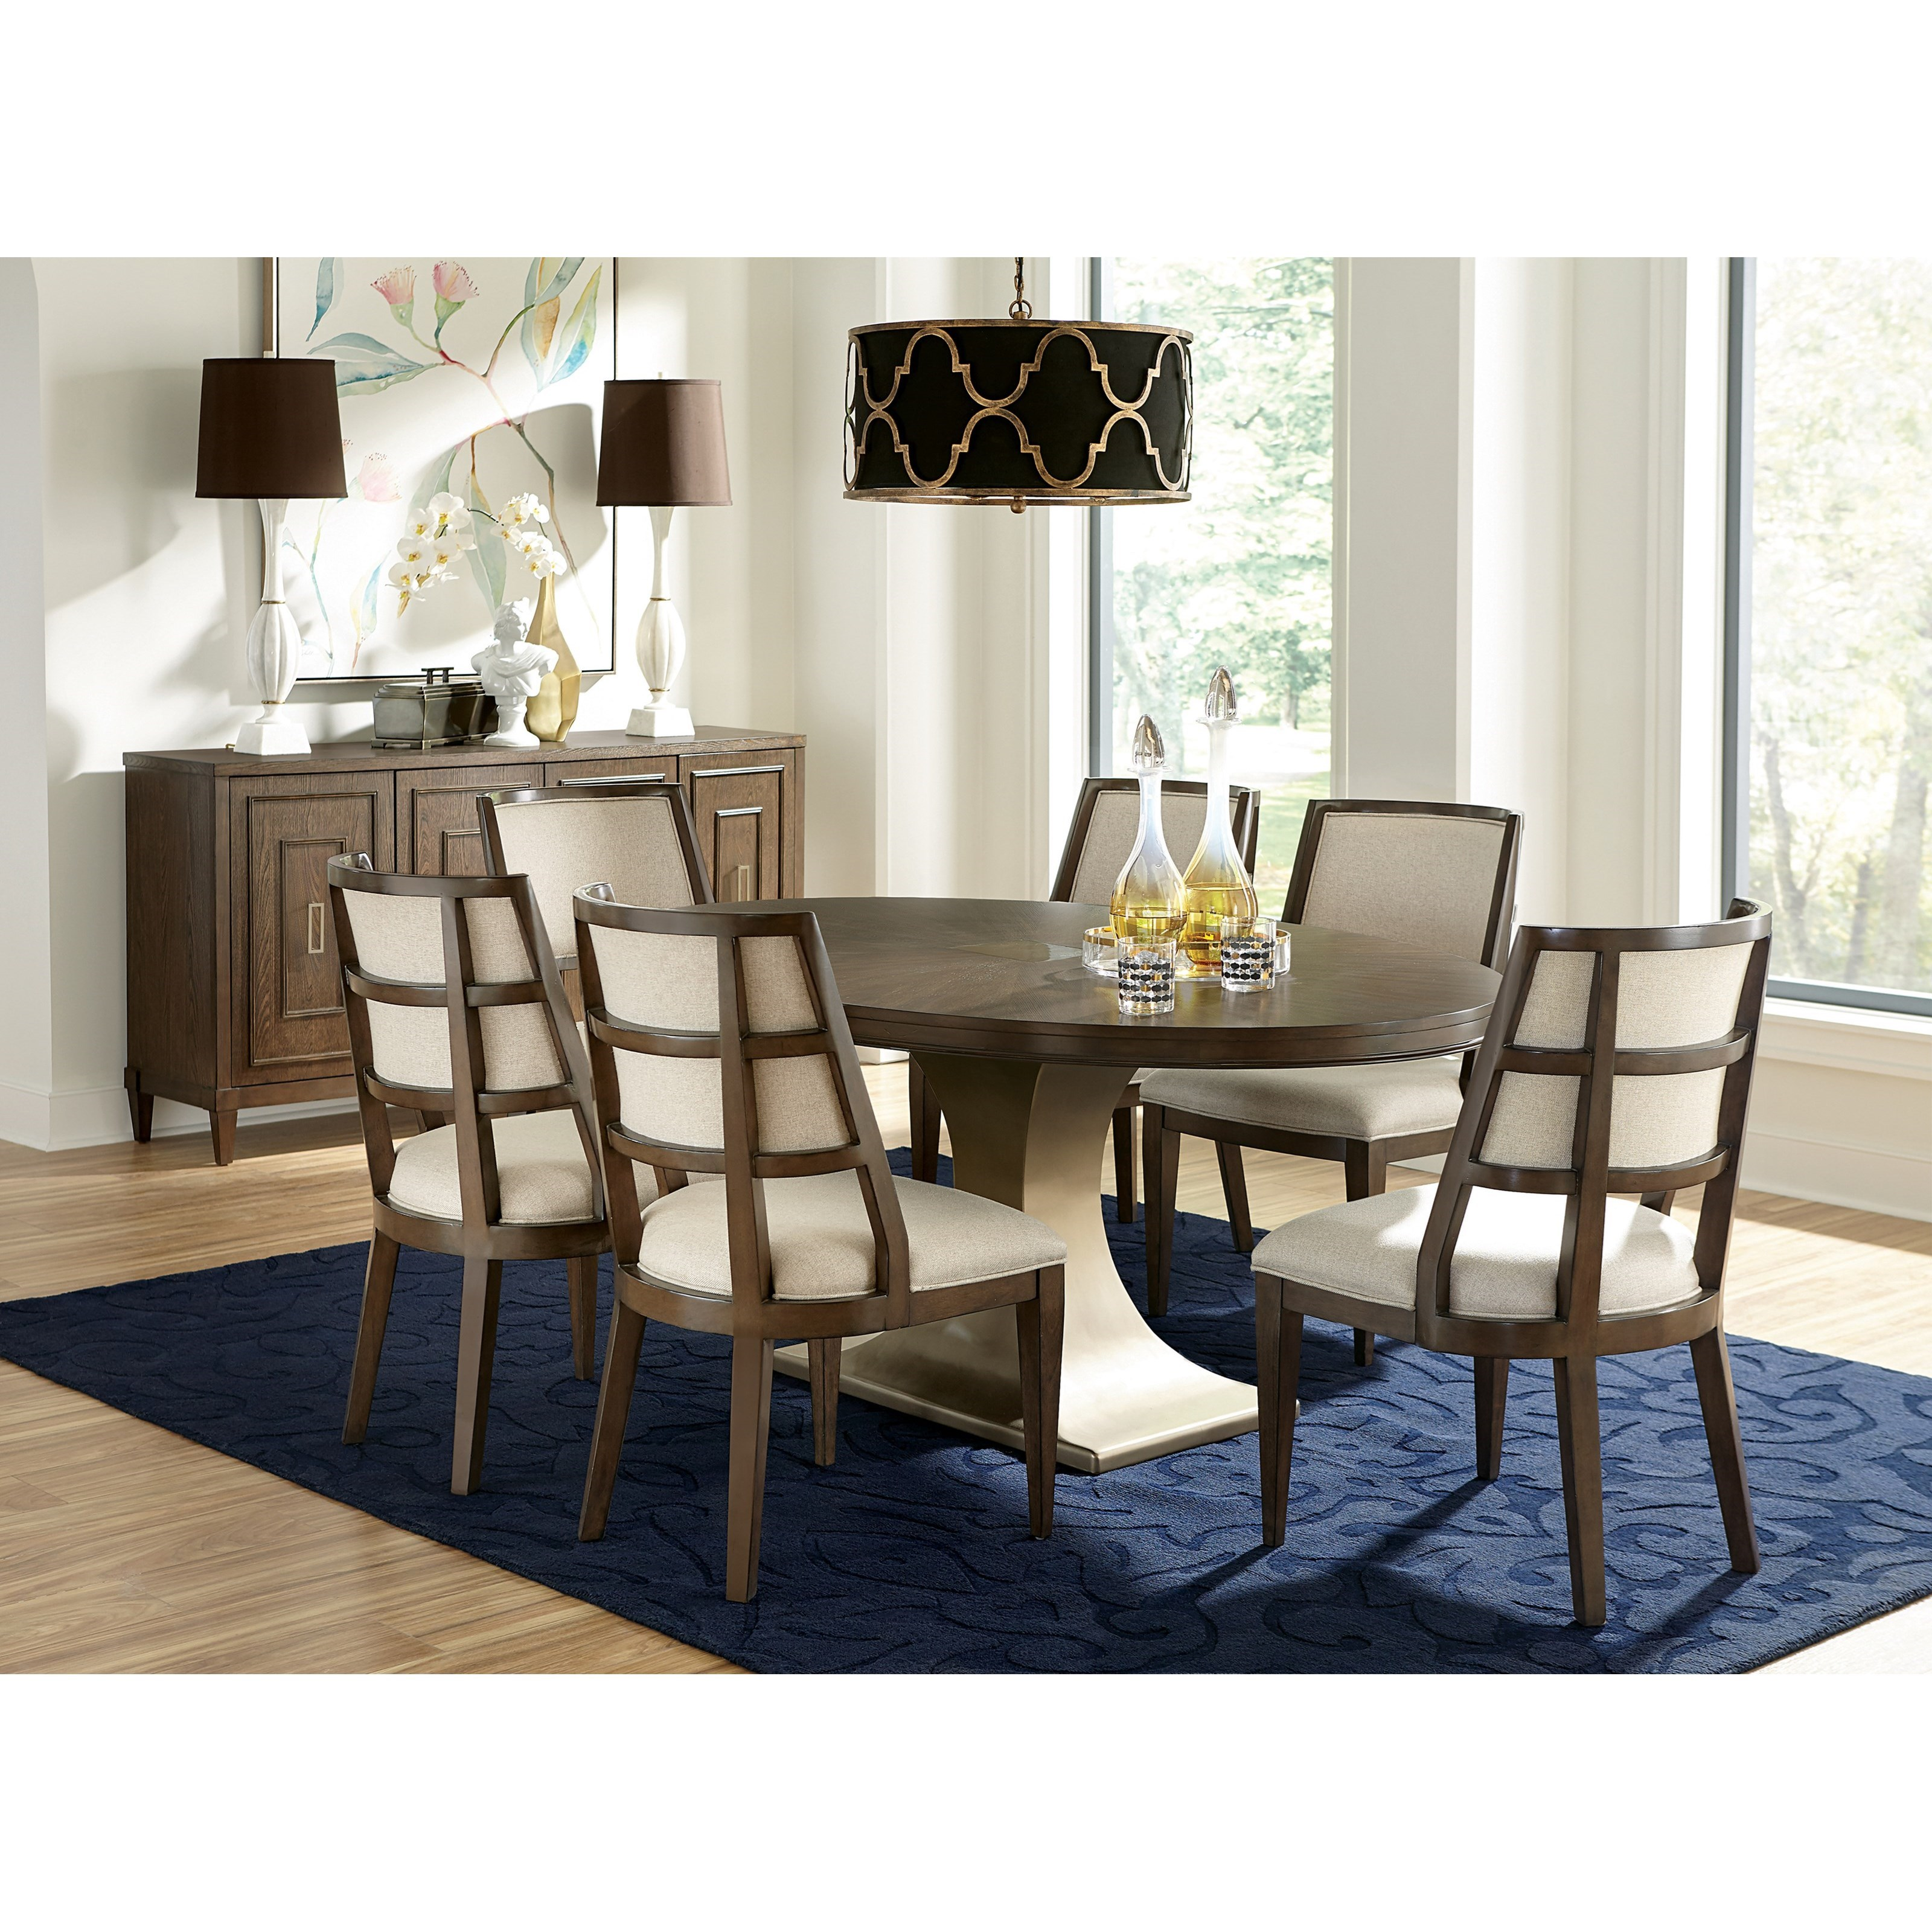 Monterey Dining Room Group by Riverside Furniture at Mueller Furniture